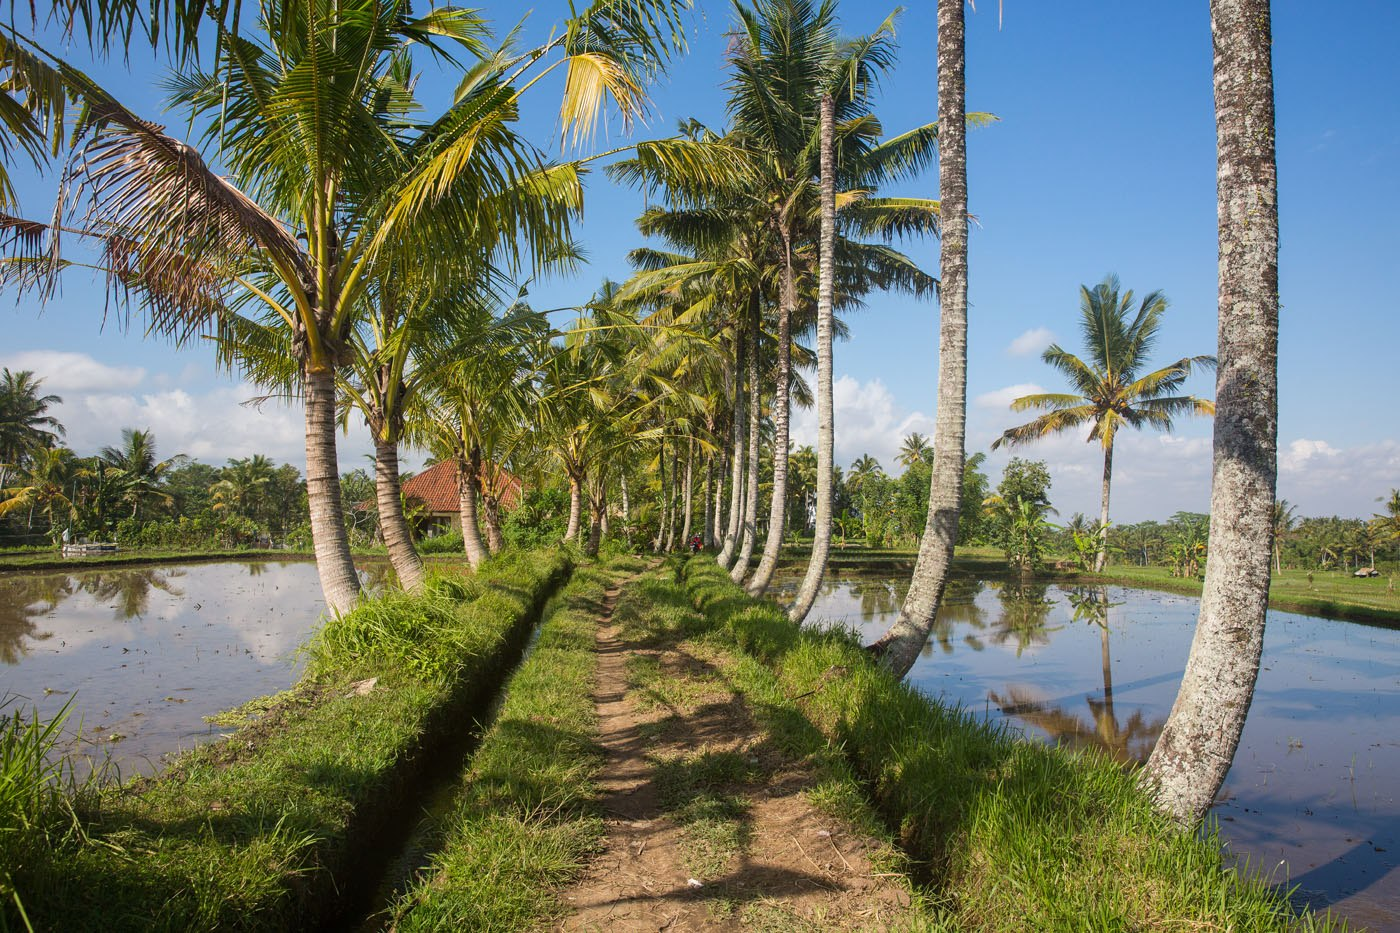 Walking rice fields Bali